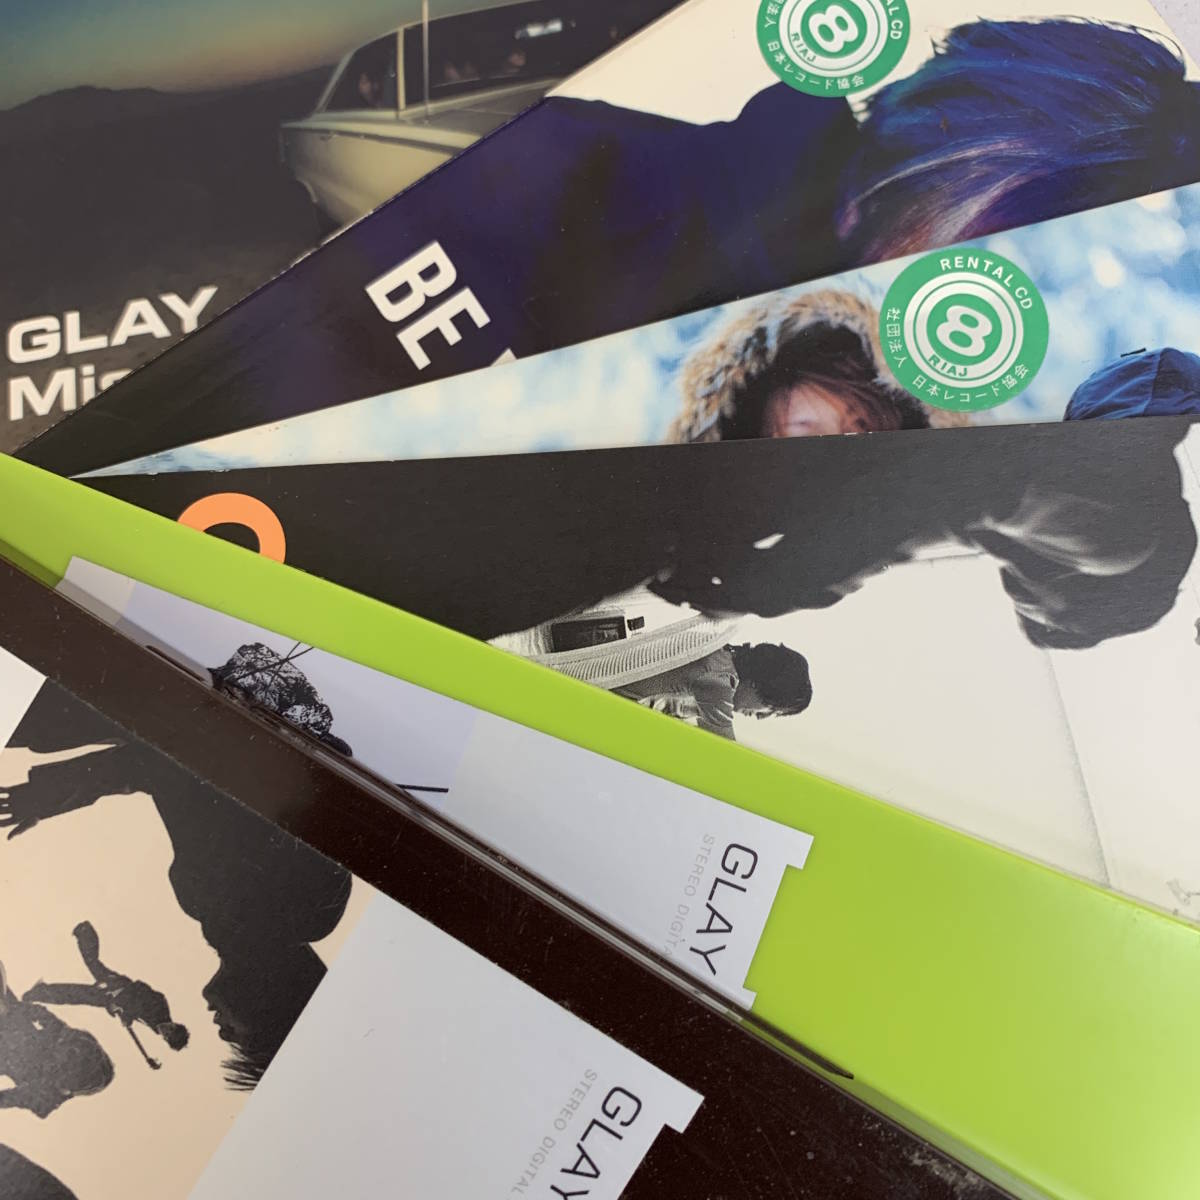 GLAY 口唇、REVIEW、Missing You、Soul Love、誘惑、a Boy、Winter,again、Be with You、However、9枚まとめて_画像4